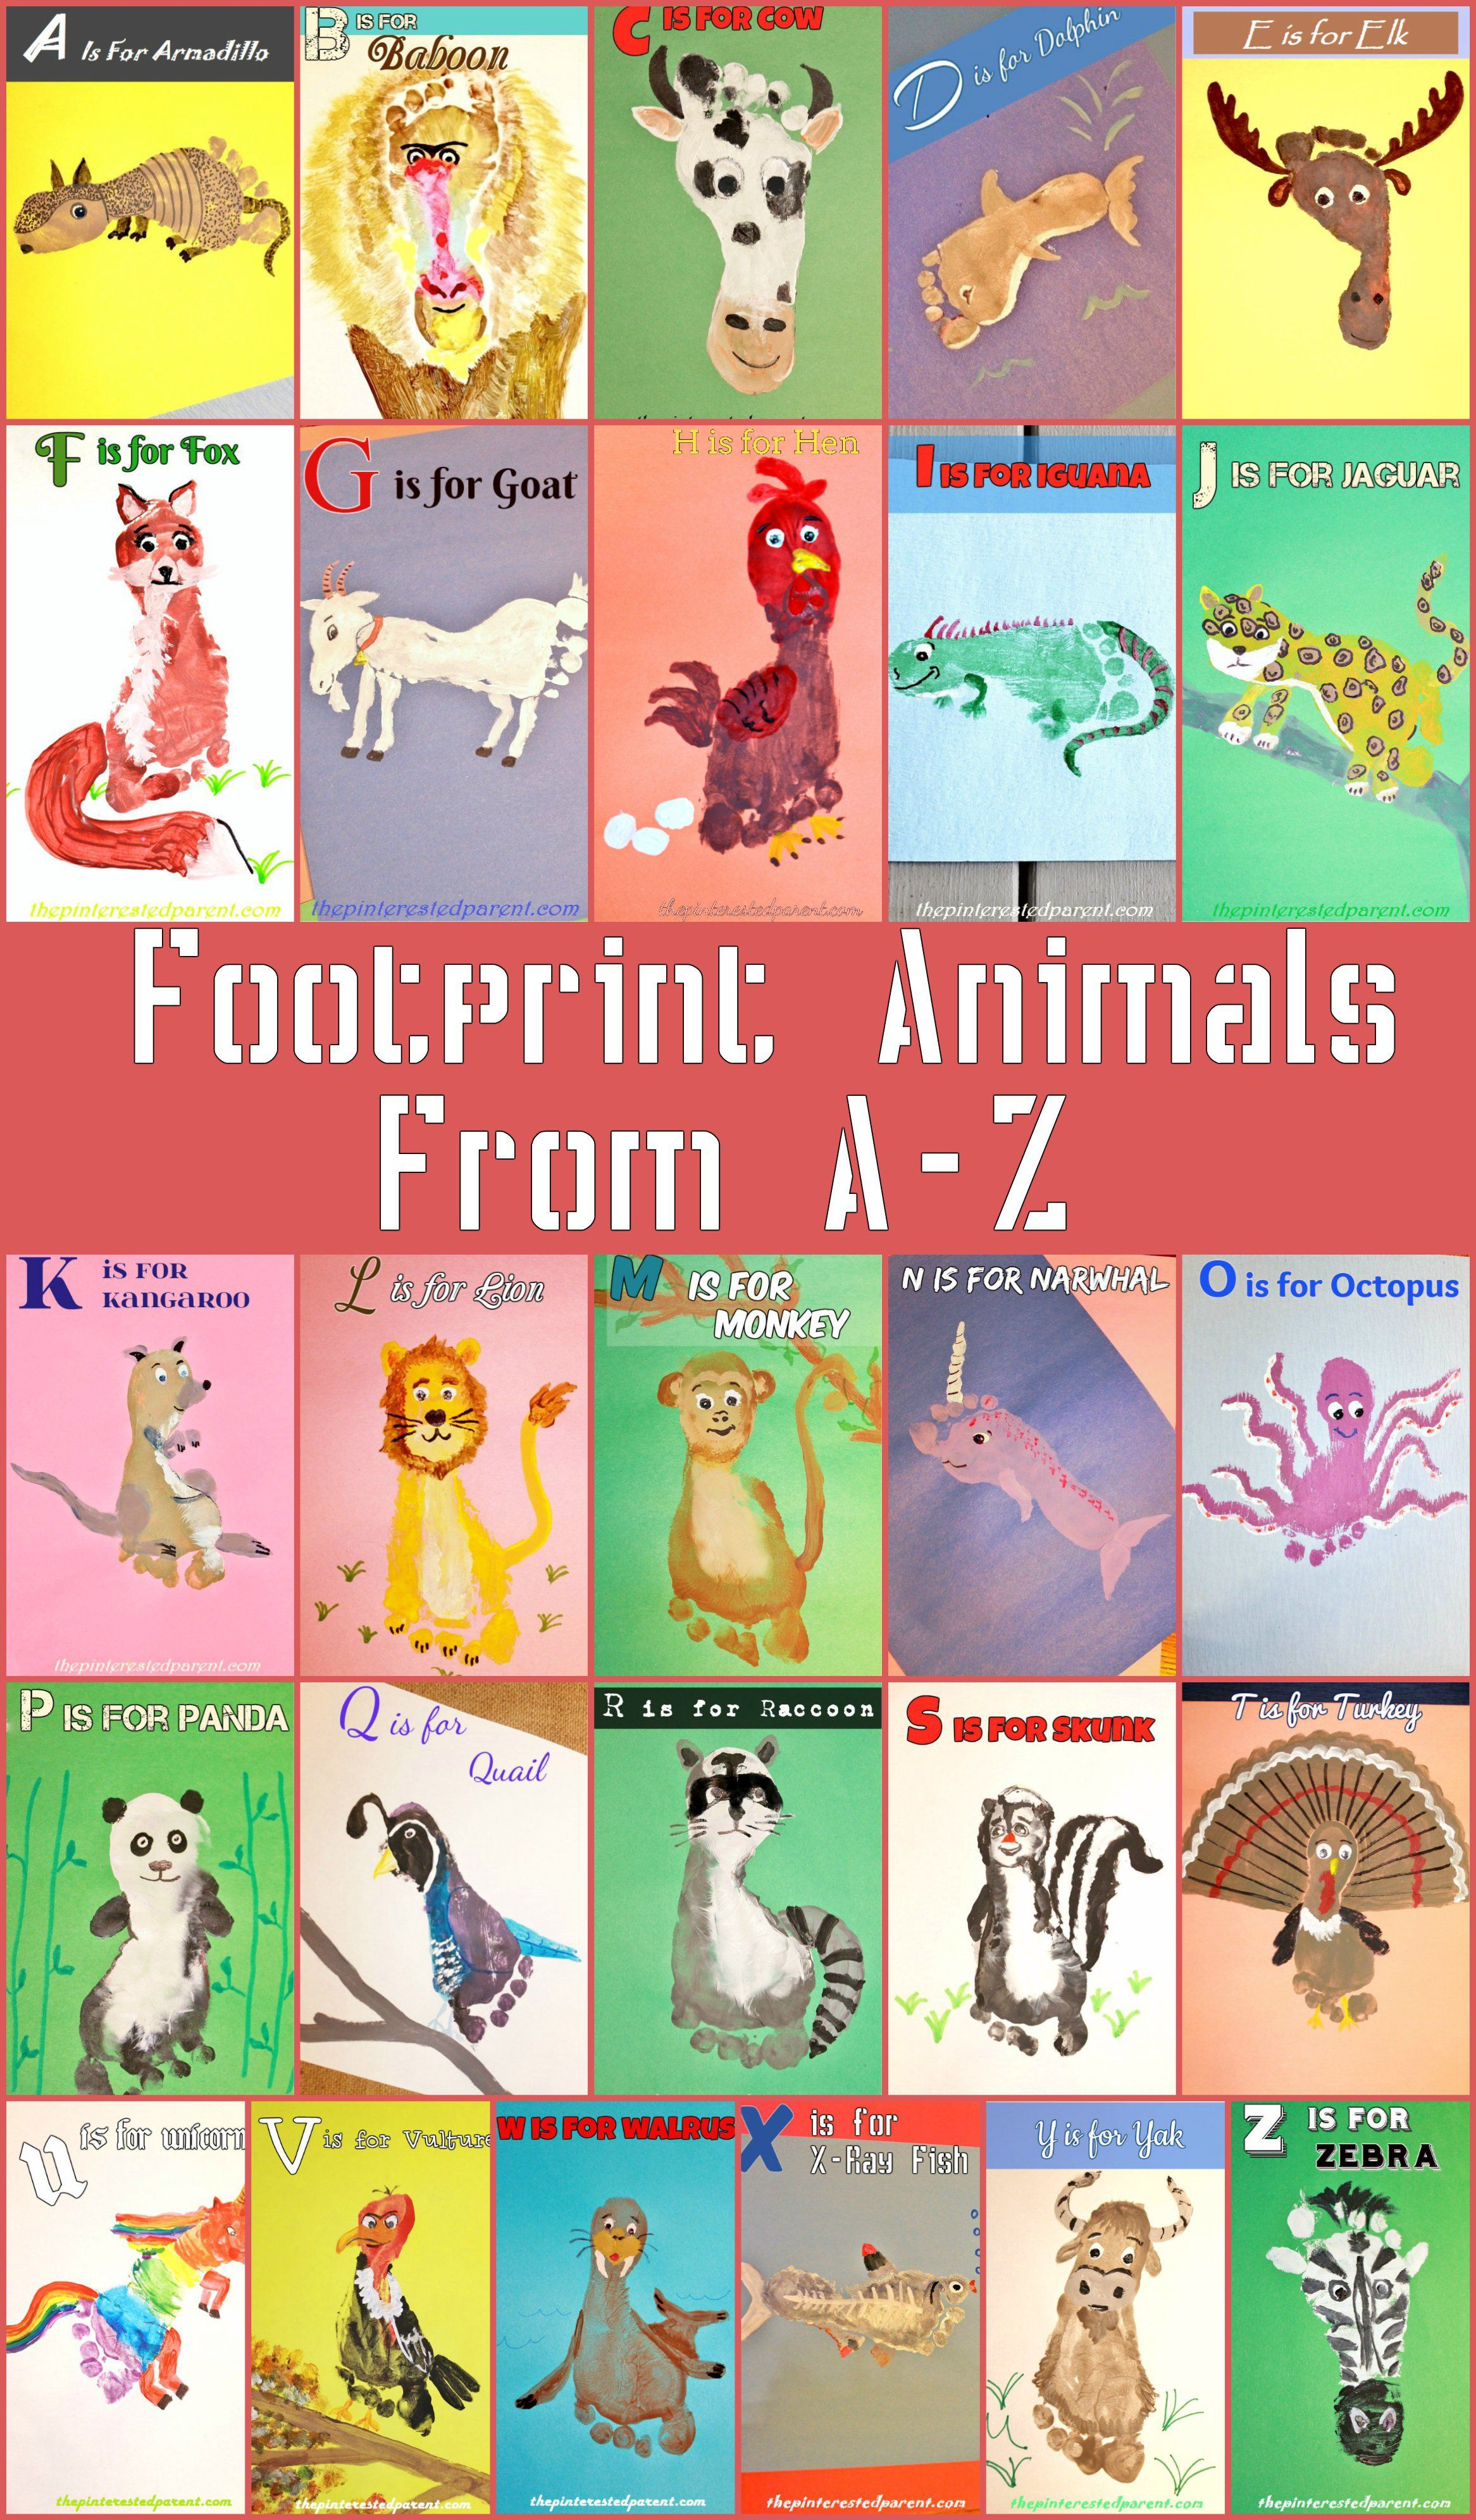 A Z Footprint Animal Crafts The Pinterested Parent Footprint Art Footprint Crafts Animal Crafts